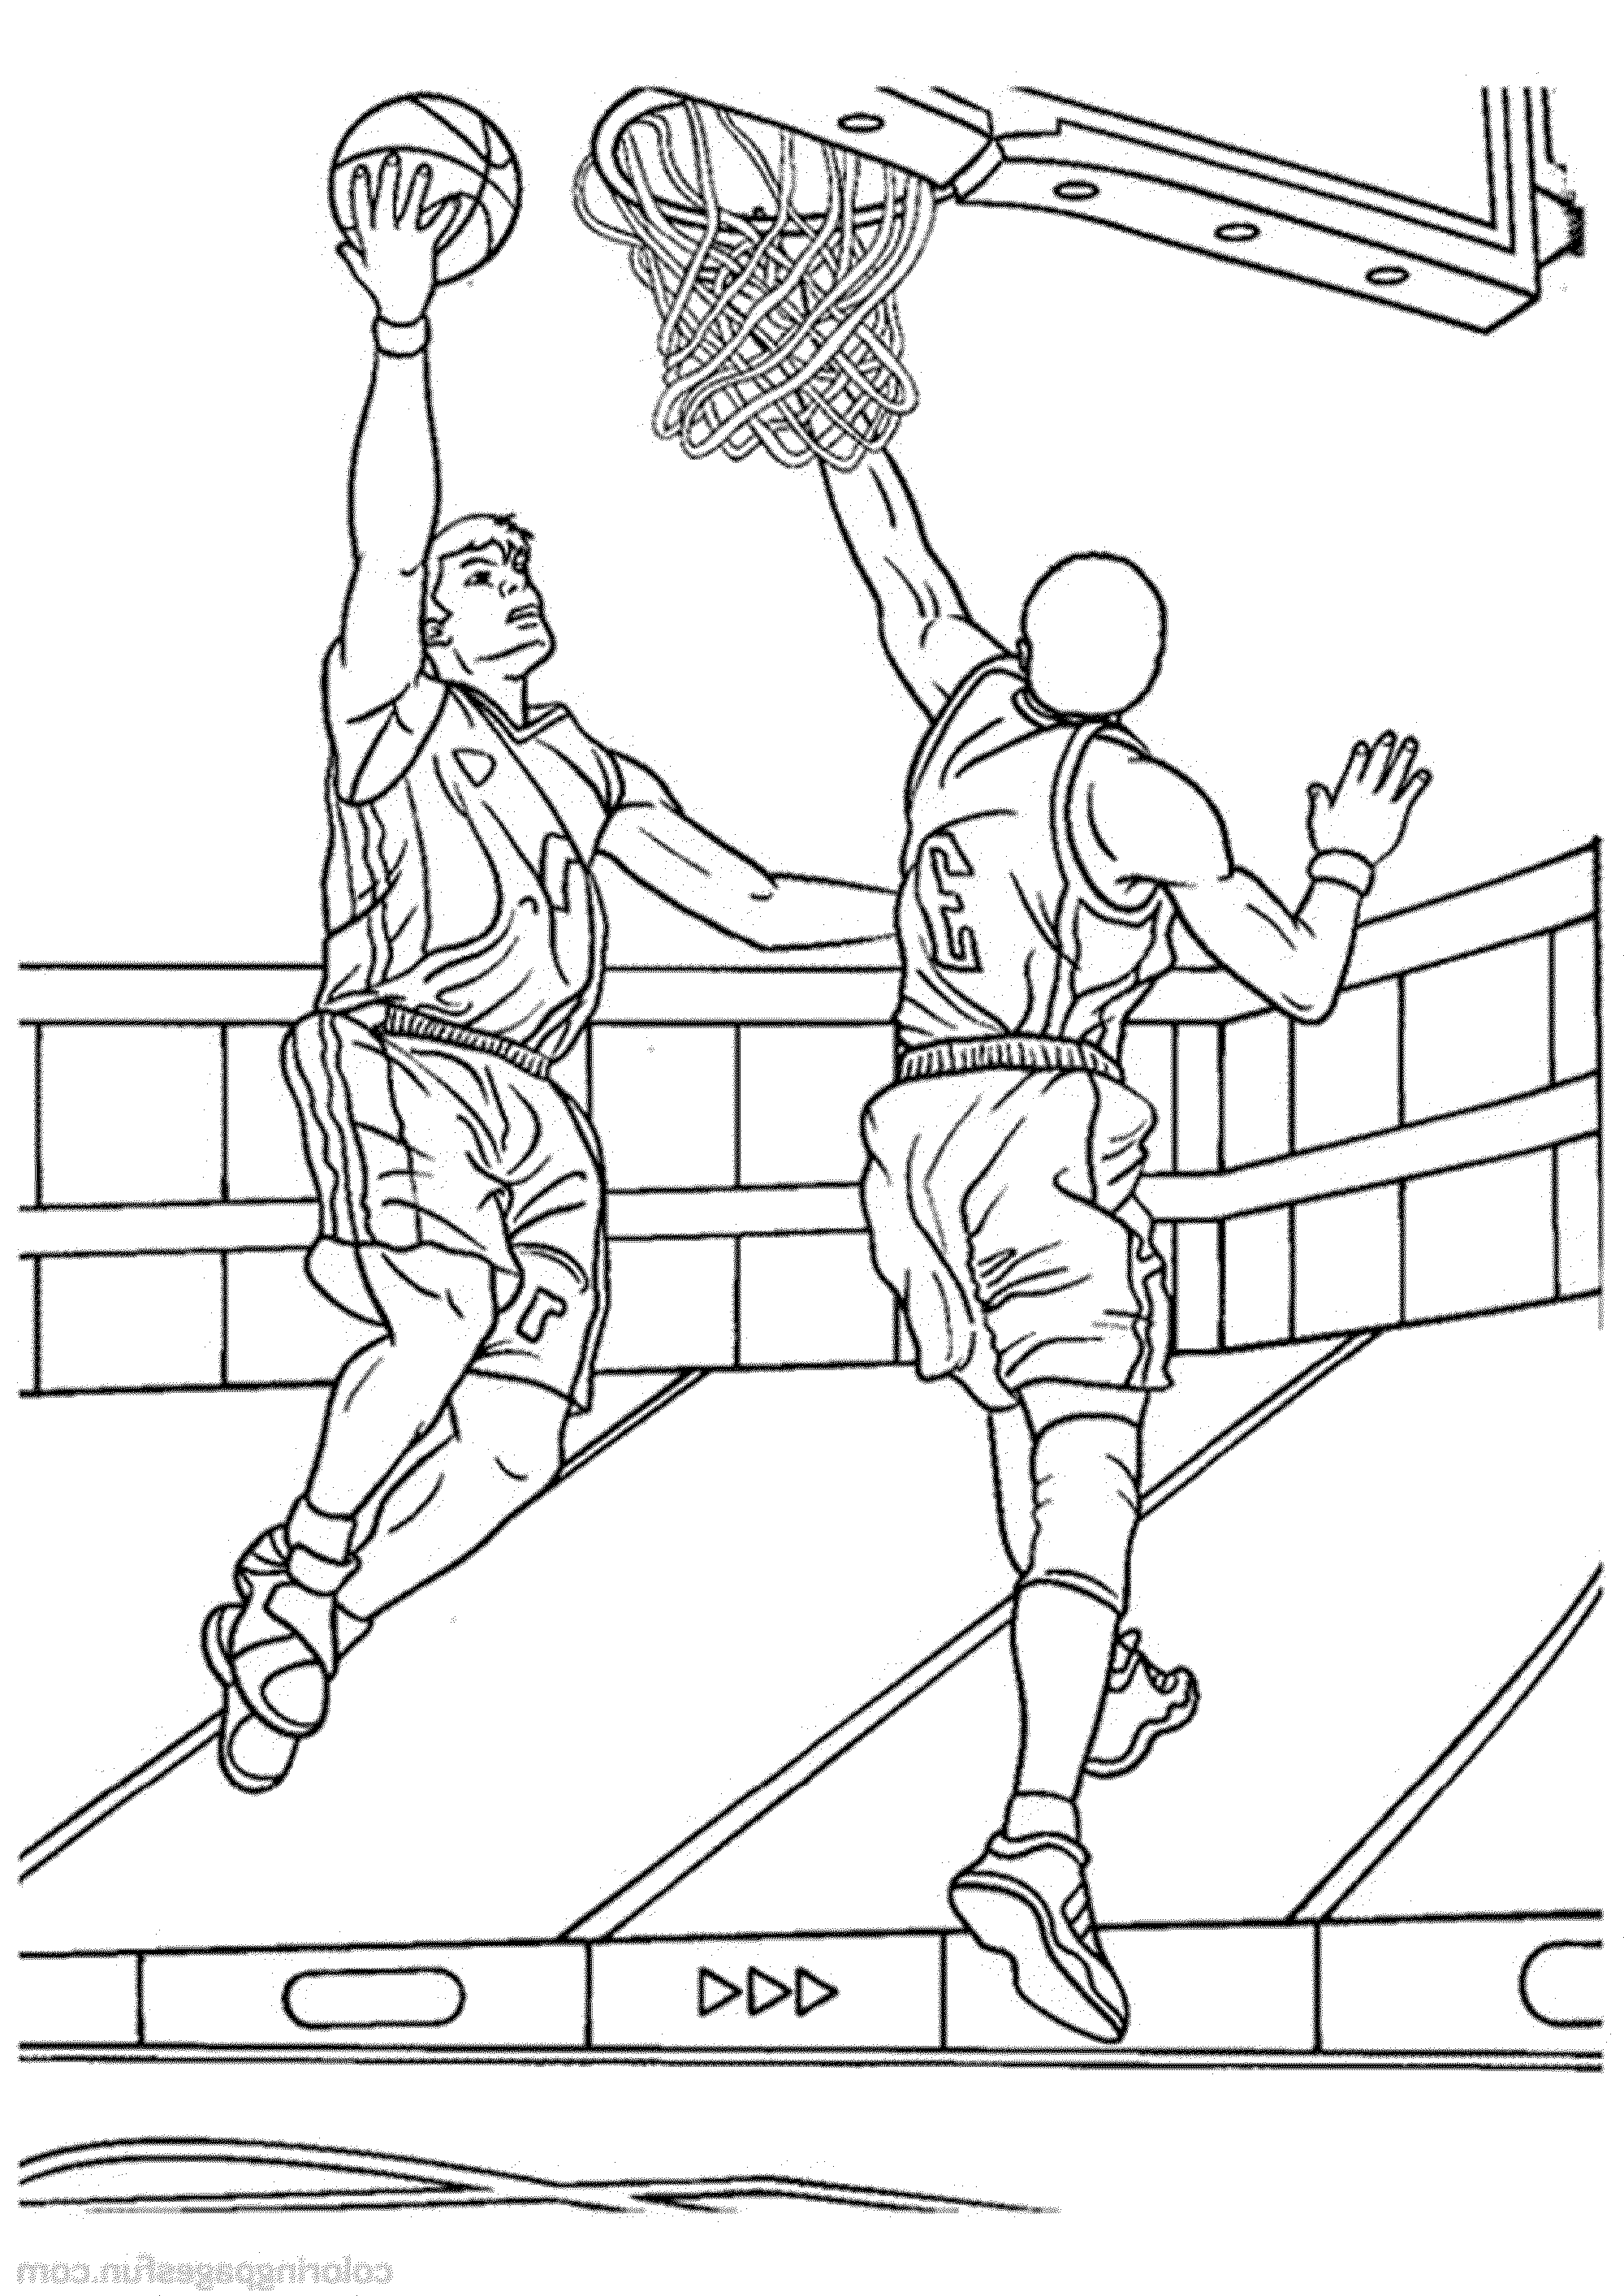 Print download interesting basketball coloring pages for Free basketball coloring pages